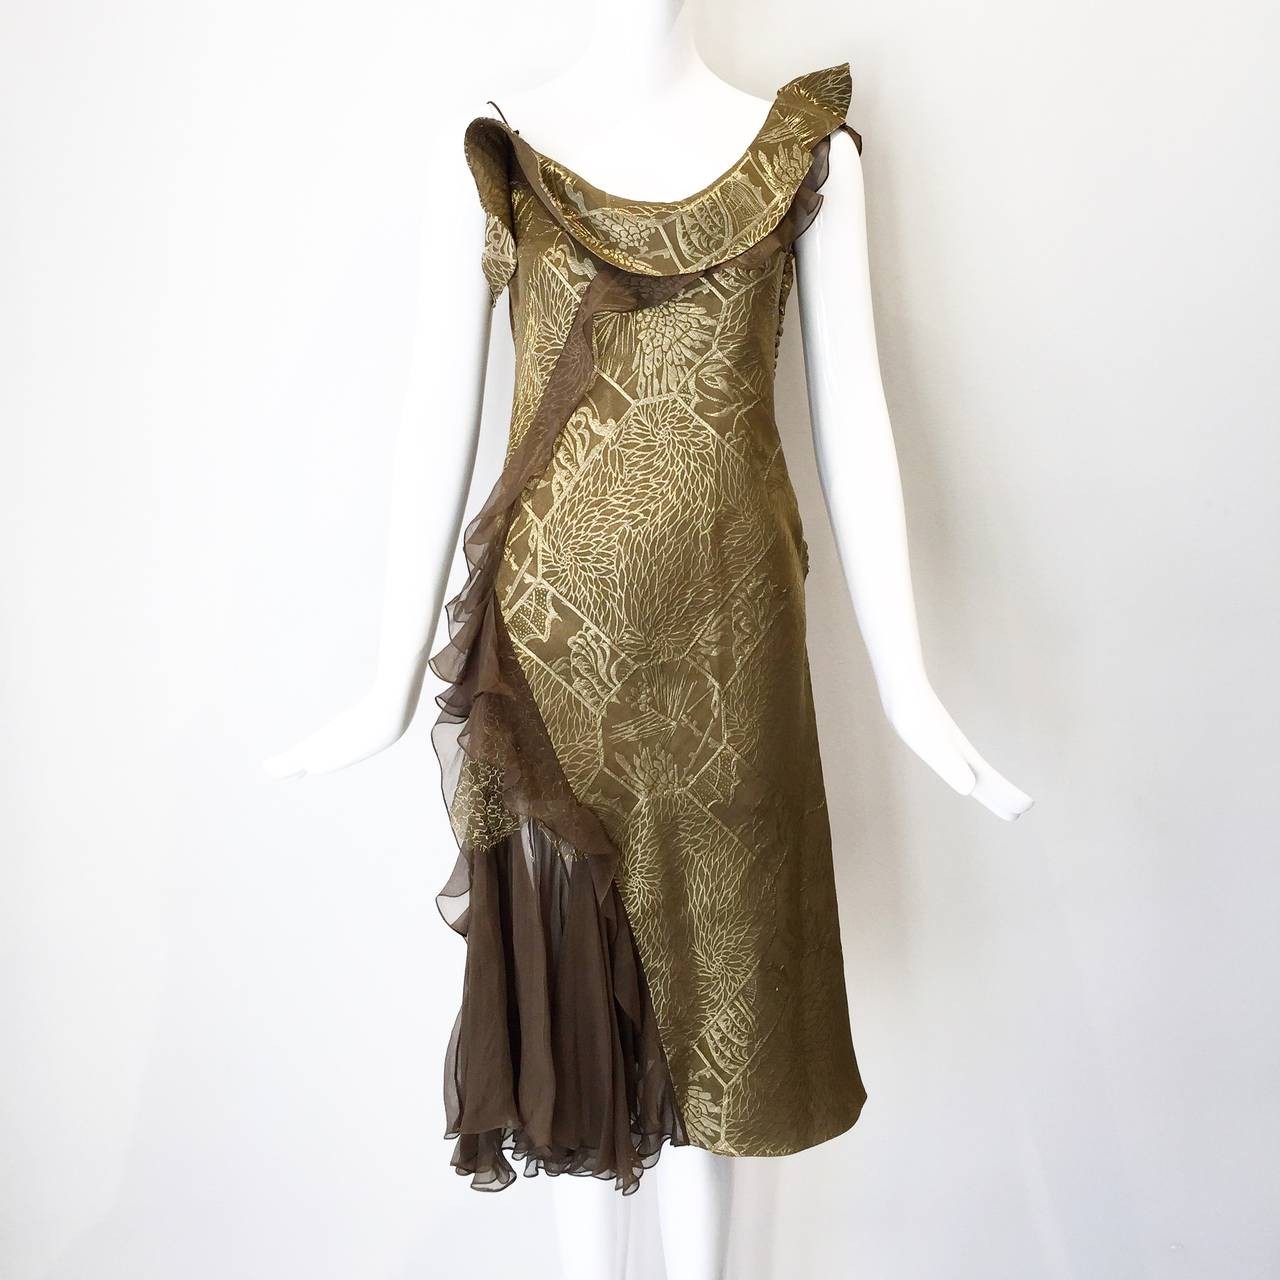 Vintage CHRISTIAN DIOR Gold Metallic Silk Brocade Ruffle Cocktail Dress 4